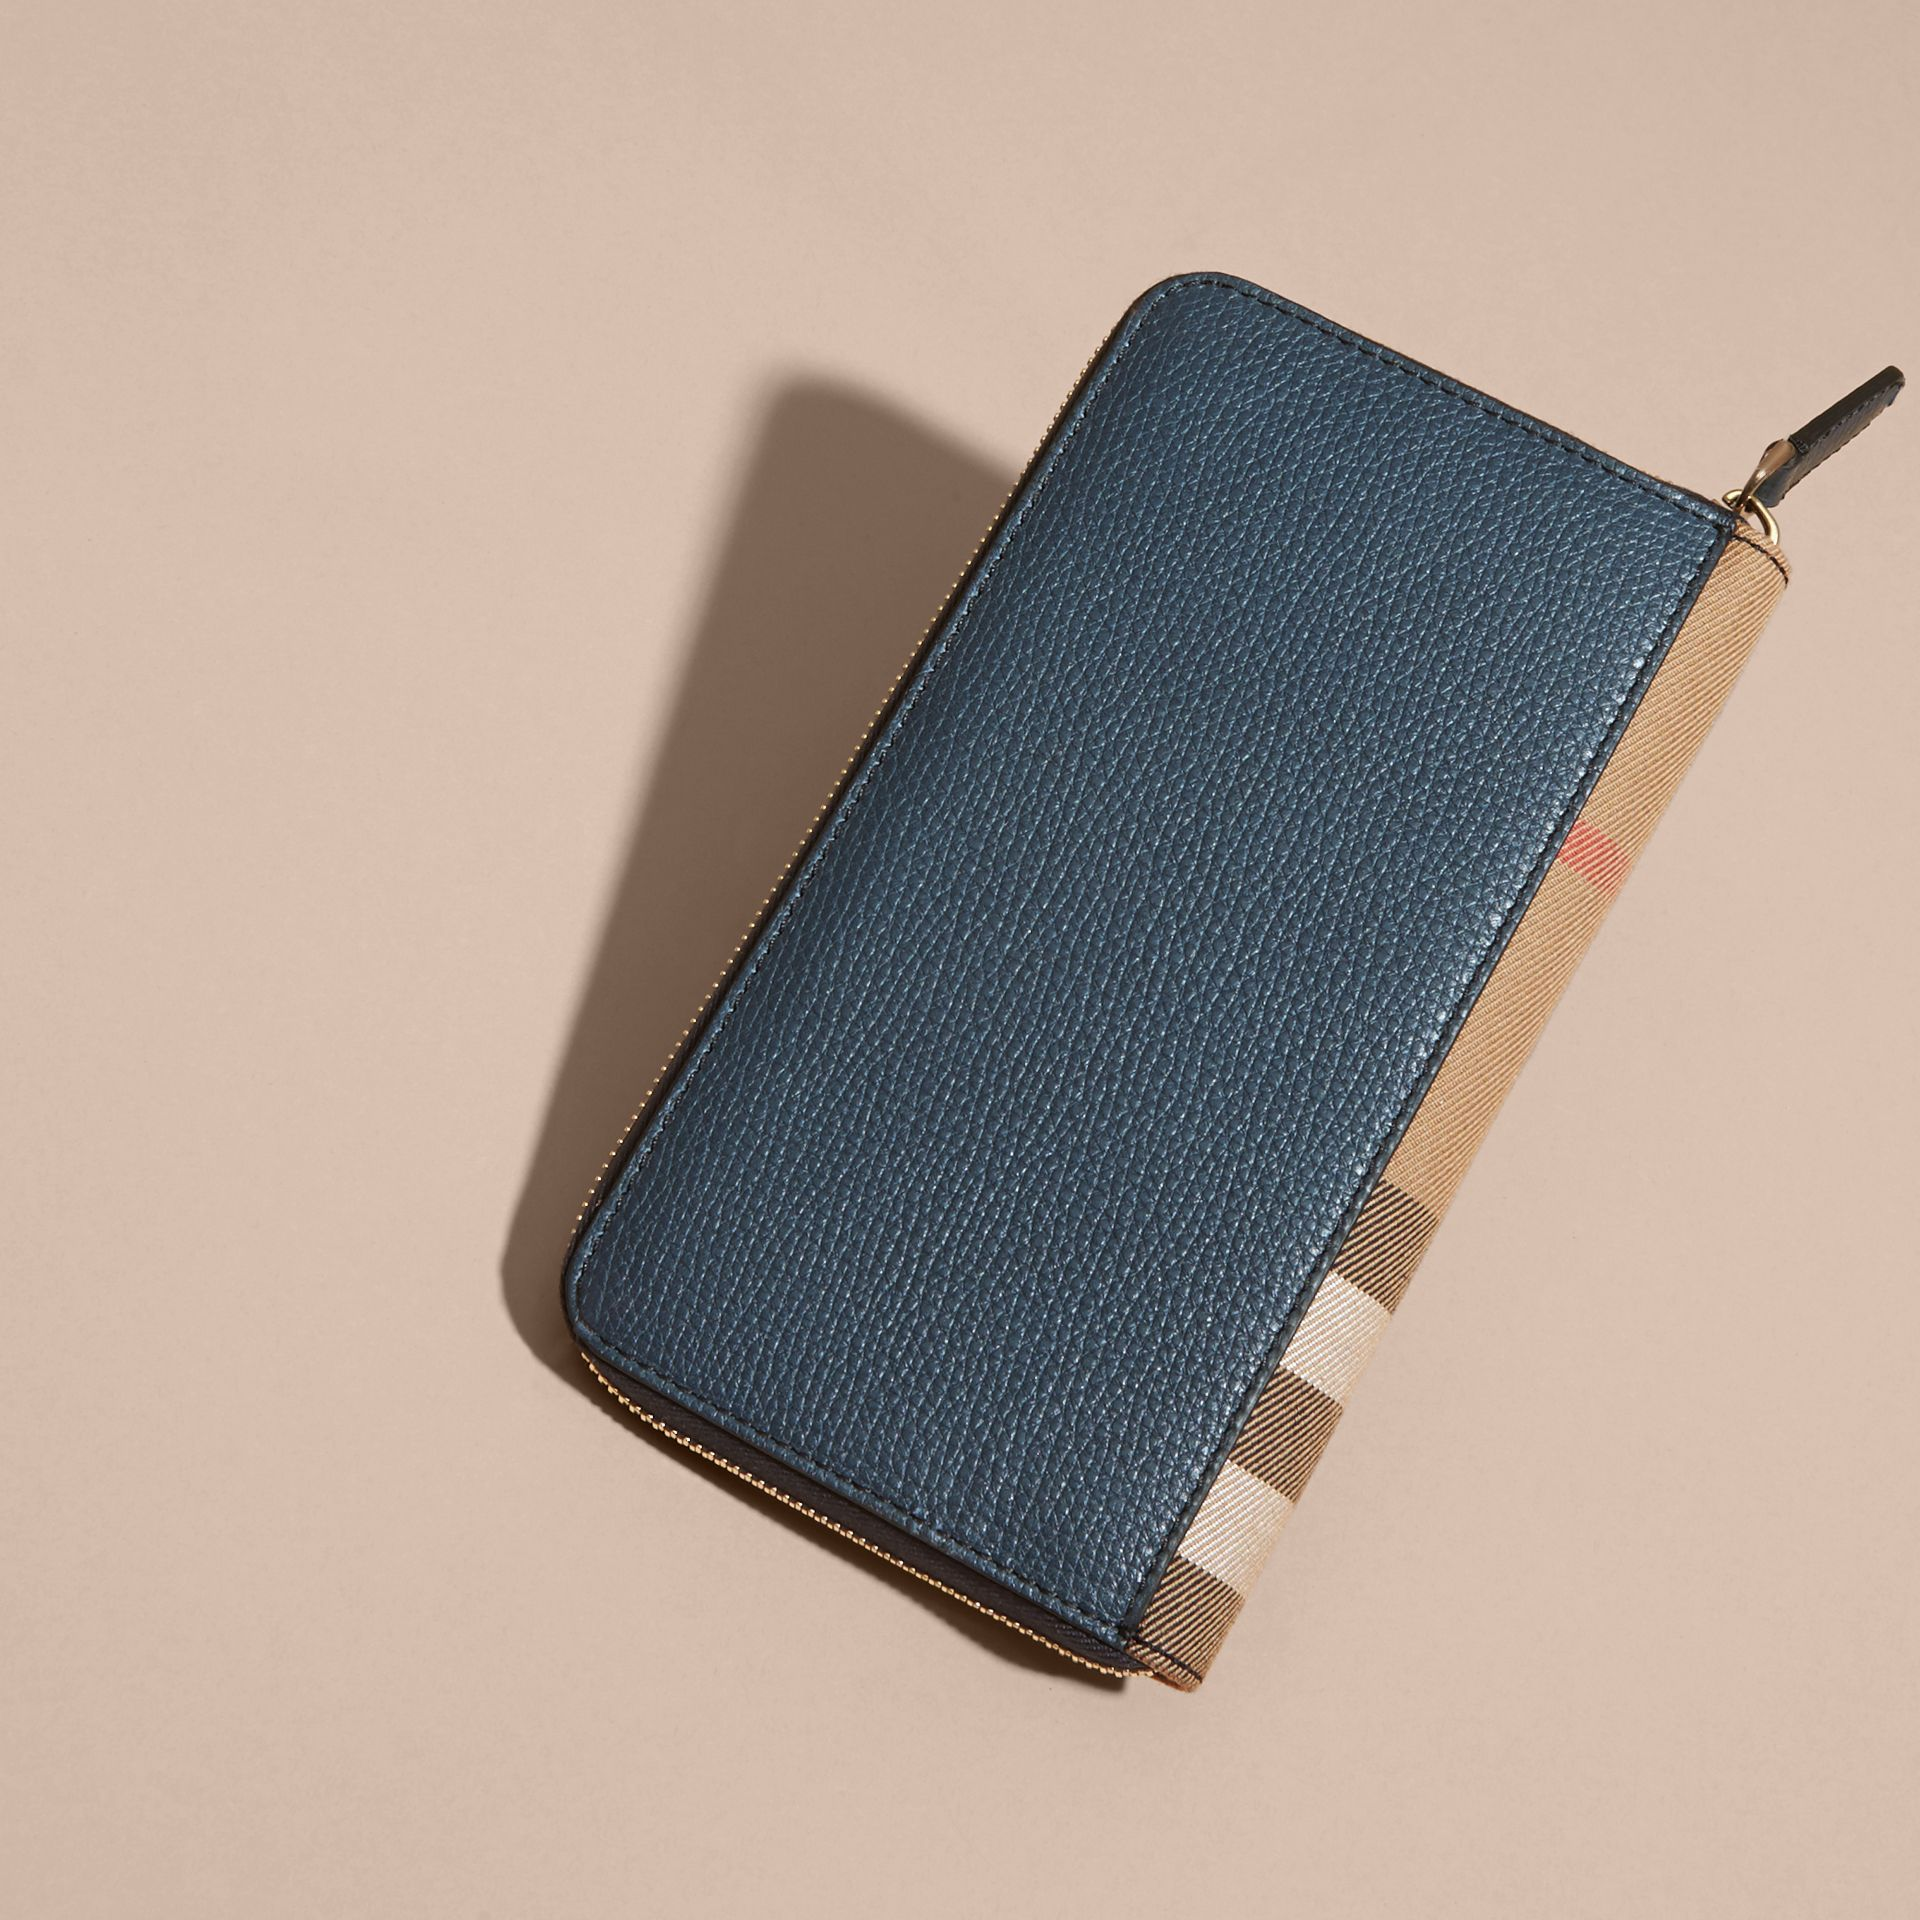 Storm blue House Check and Grainy Leather Ziparound Wallet Storm Blue - gallery image 3